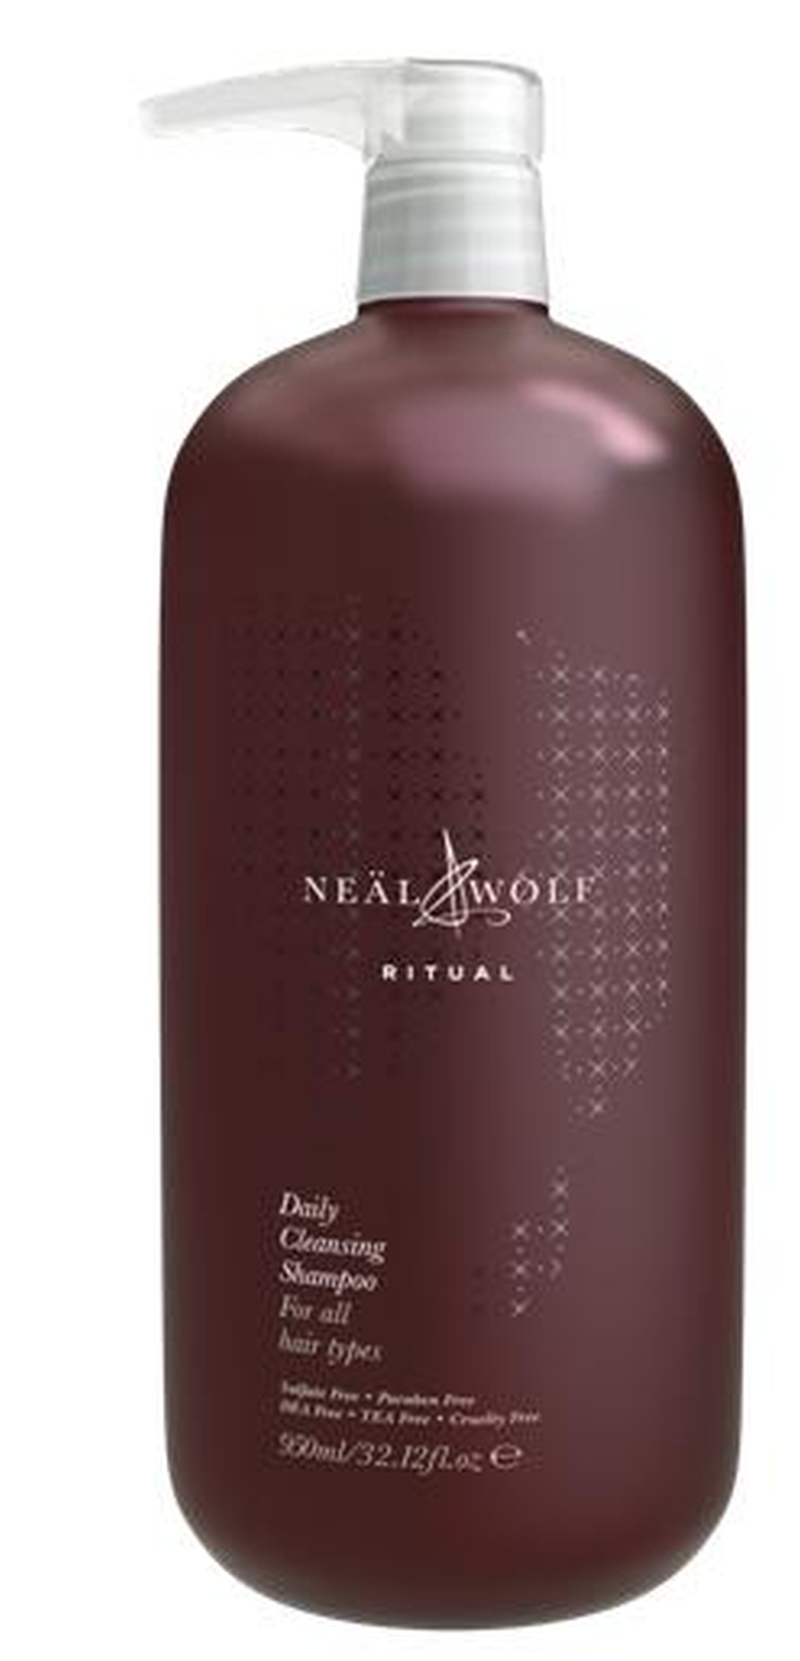 Neal and Wolf Ritual Daily Cleansing Shampoo 950ml